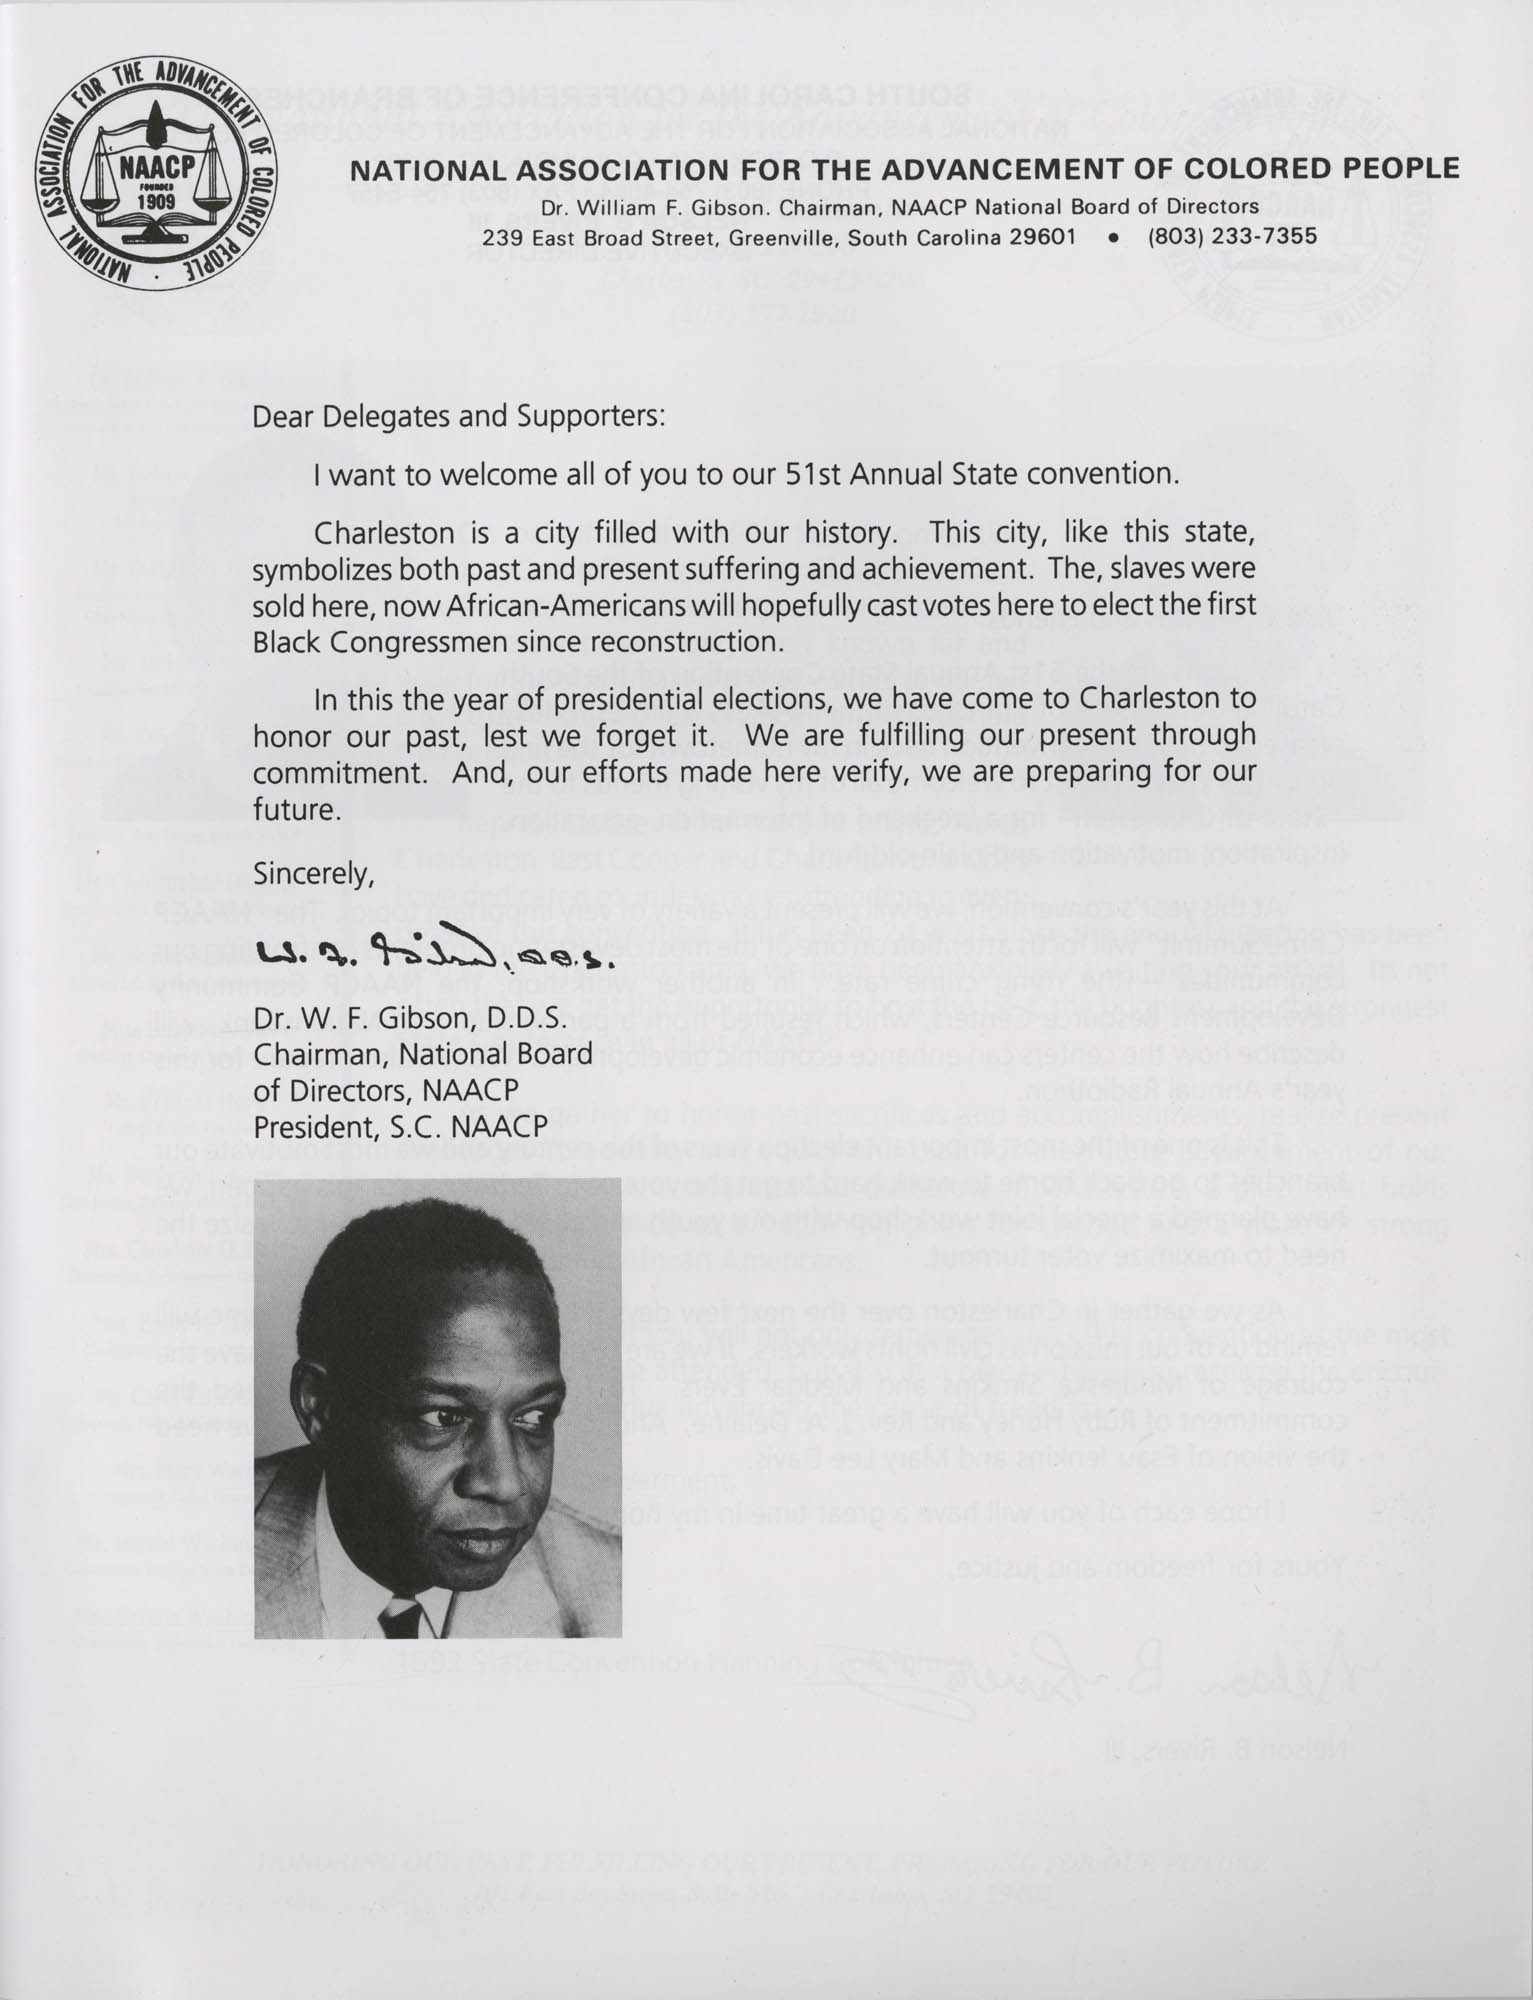 Charleston Branch of the NAACP 51st Annual State Convention Program, Page 1